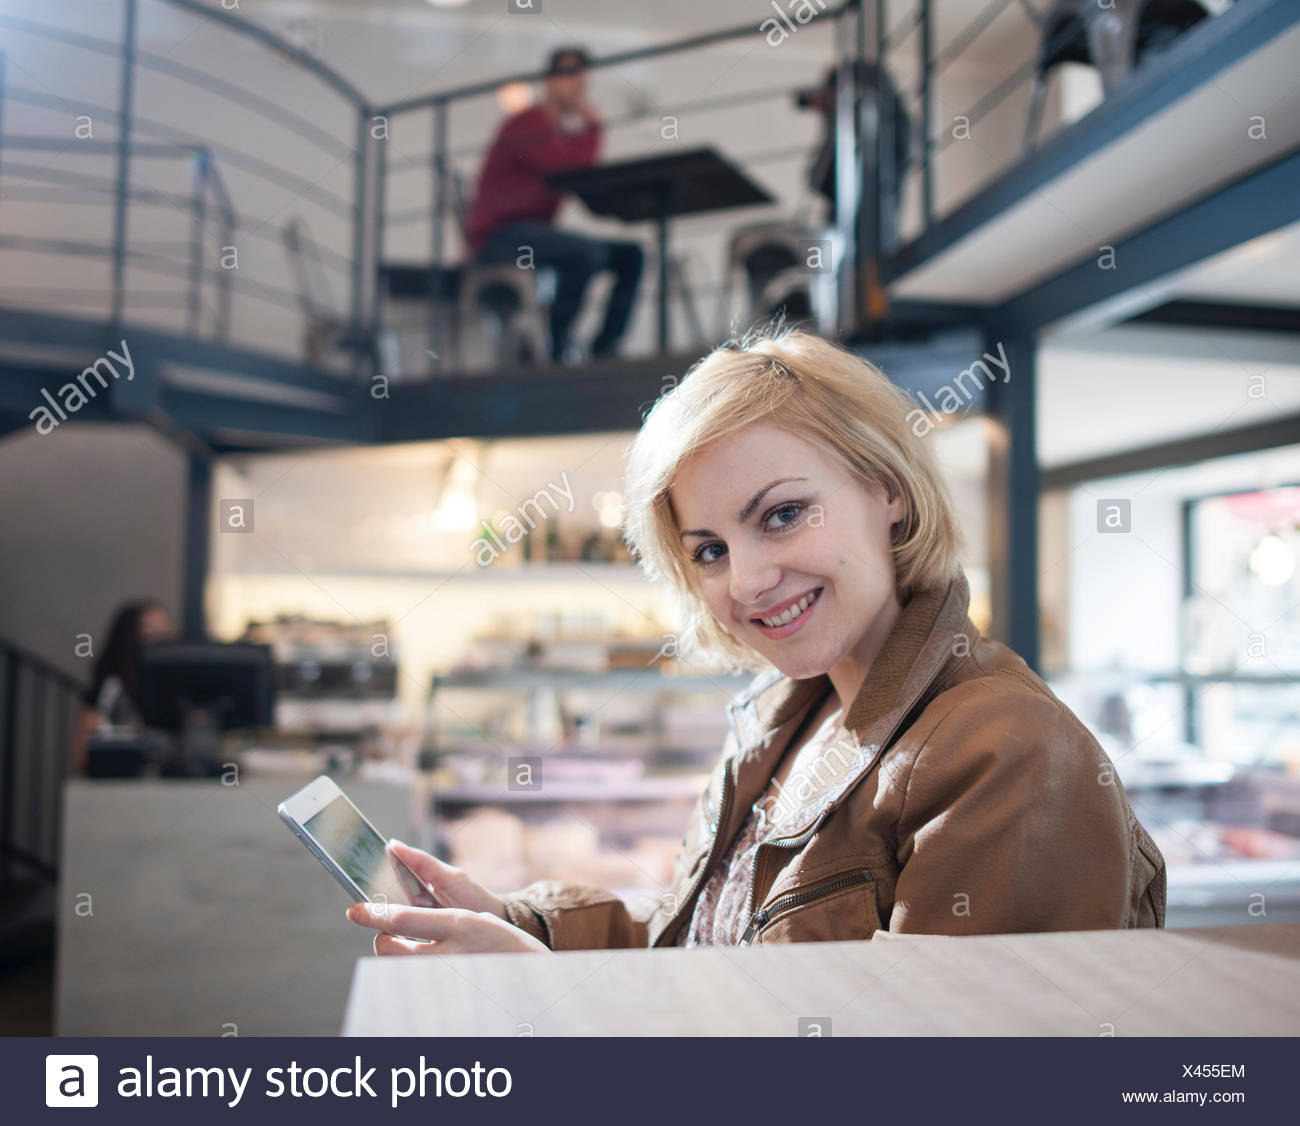 Portrait of smiling young woman using tablet PC in cafe Banque D'Images